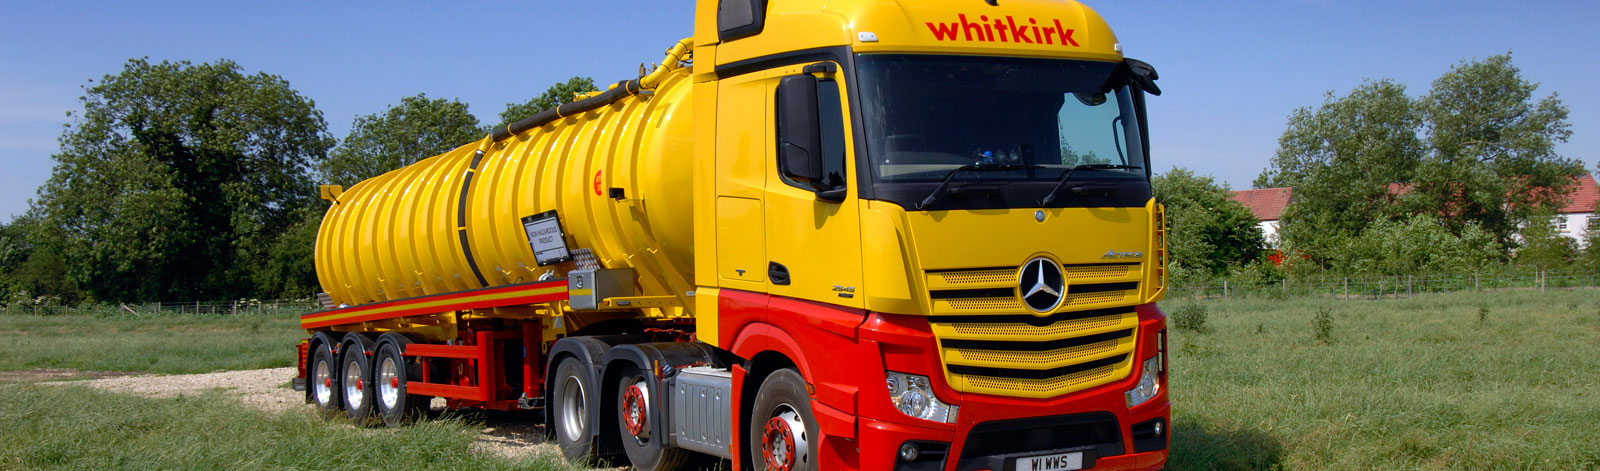 Whitkirk Vehicle Header